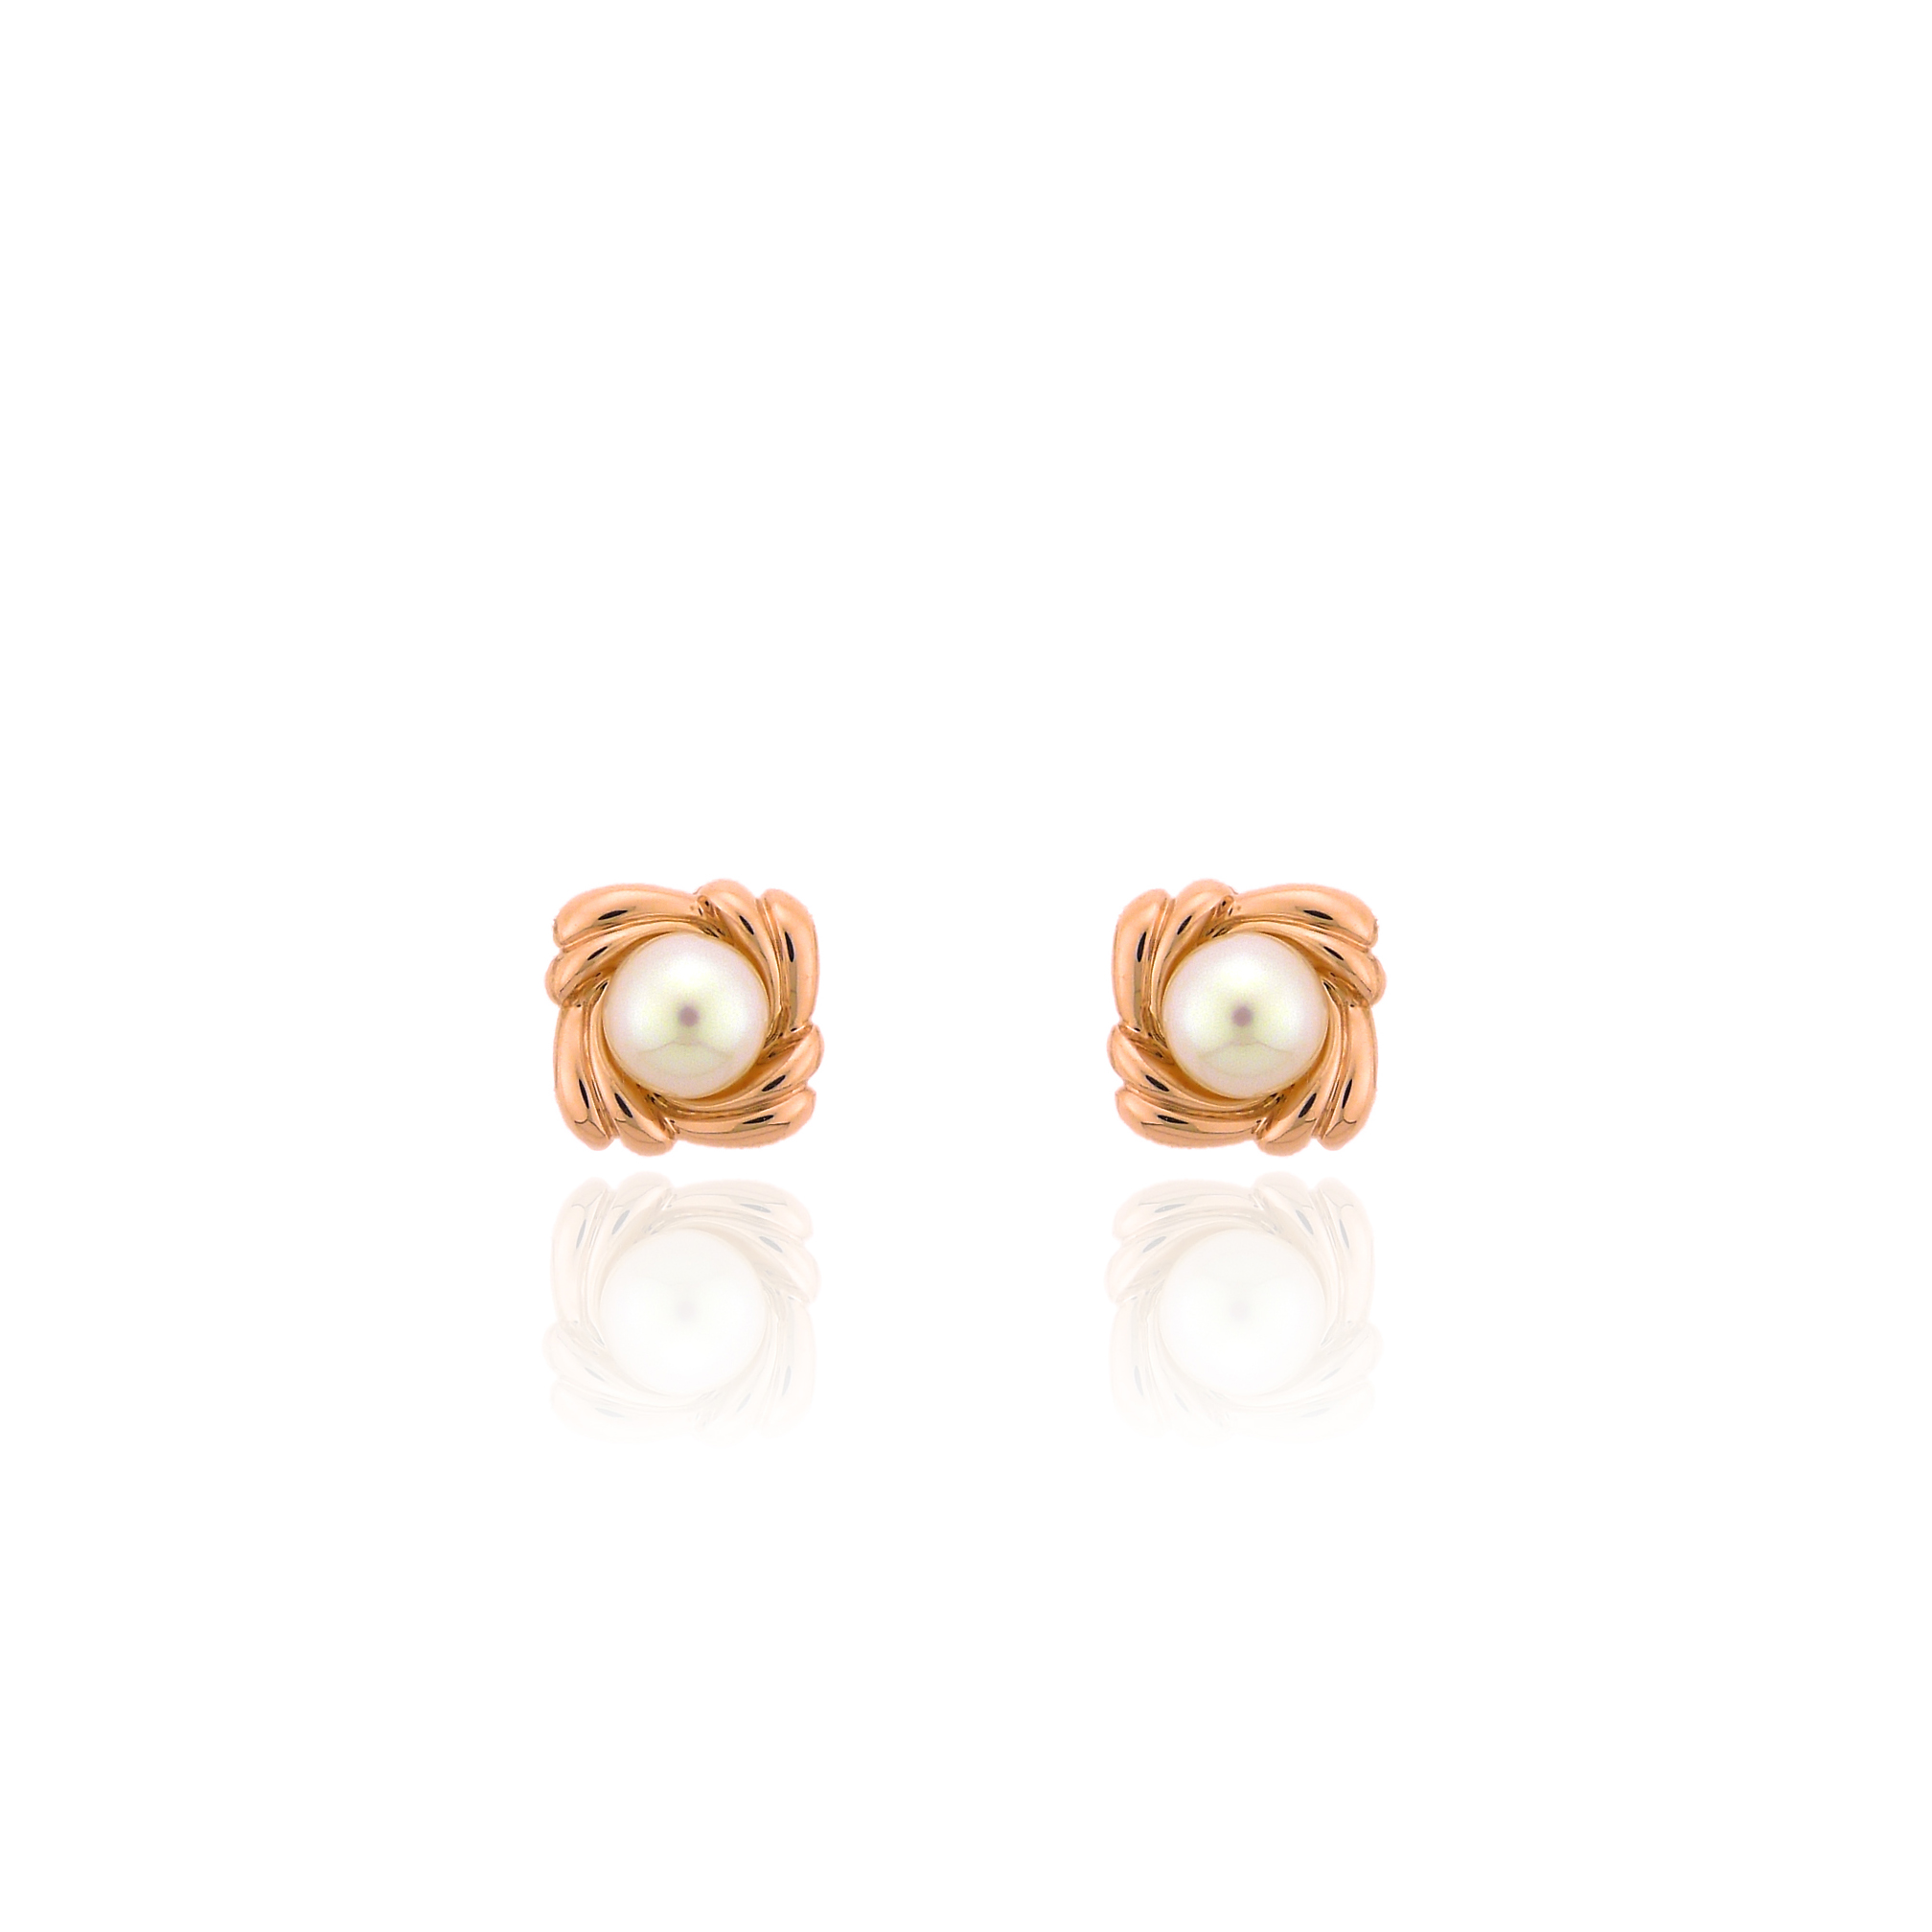 It's for everyday  - These are the perfect pair to wear everyday. It's the perfect mix of rose gold and a simple pearl for an everyday wear. They are 14K rose gold, 6 mm Akoya pearls. Like I said, perfect for everyday wear. If you want to be a little more extravagant check out the next pair of earrings that we just made! This simple pair can make any woman powerful but give them that extra feminine feel. Click on the image for more information.